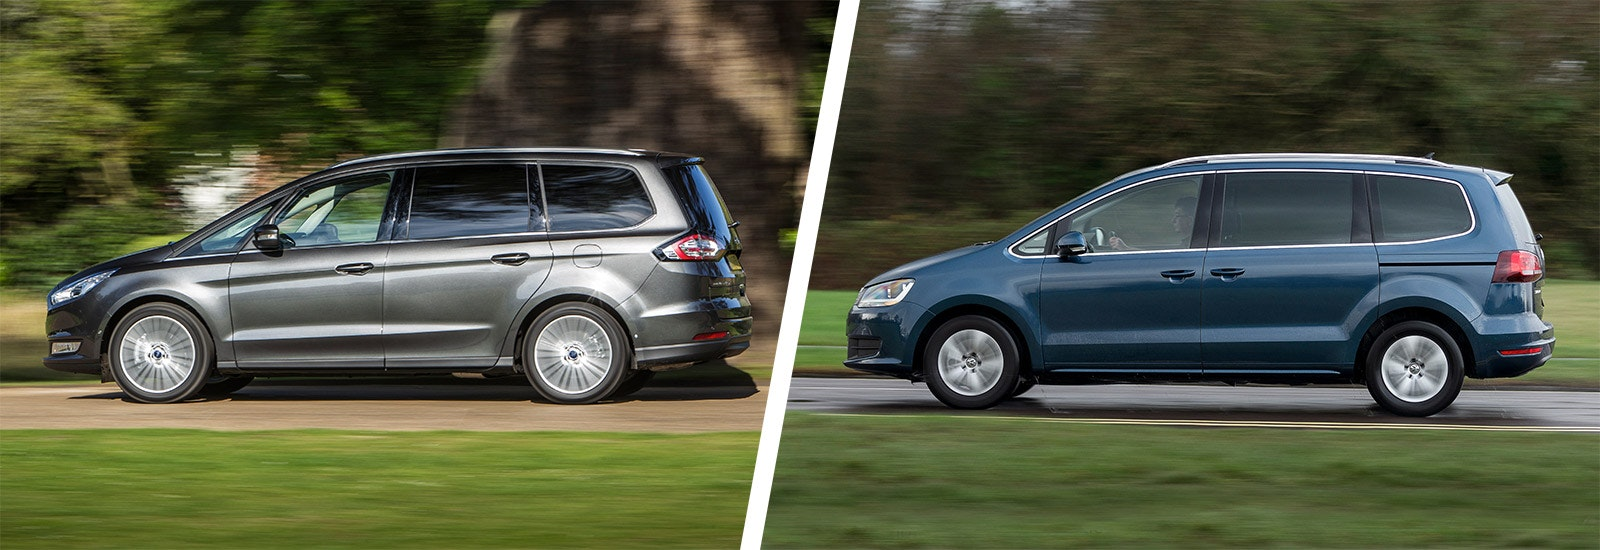 vw sharan and ford galaxy